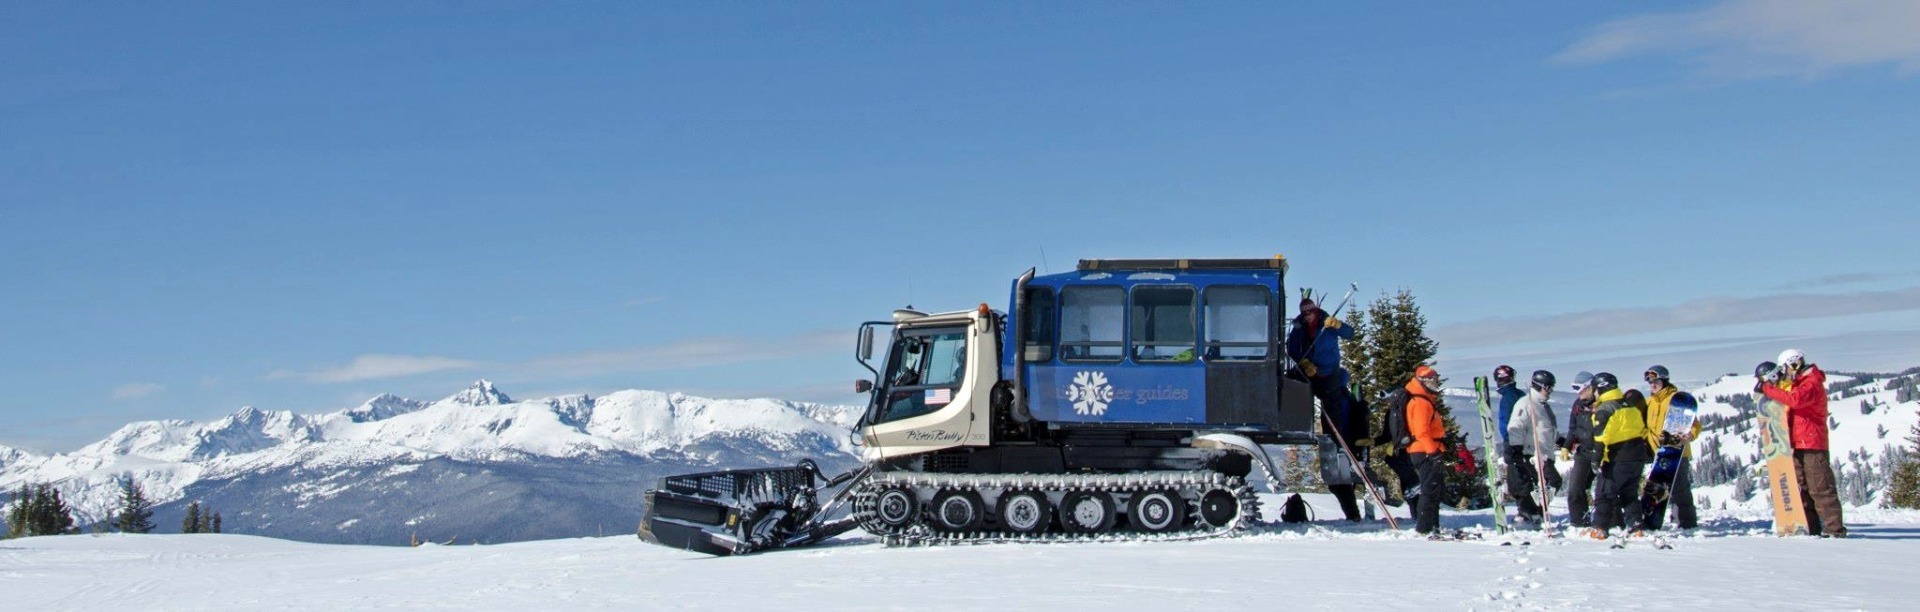 The snowcat with Vail Powder Guides. - © Vail Powder Guides